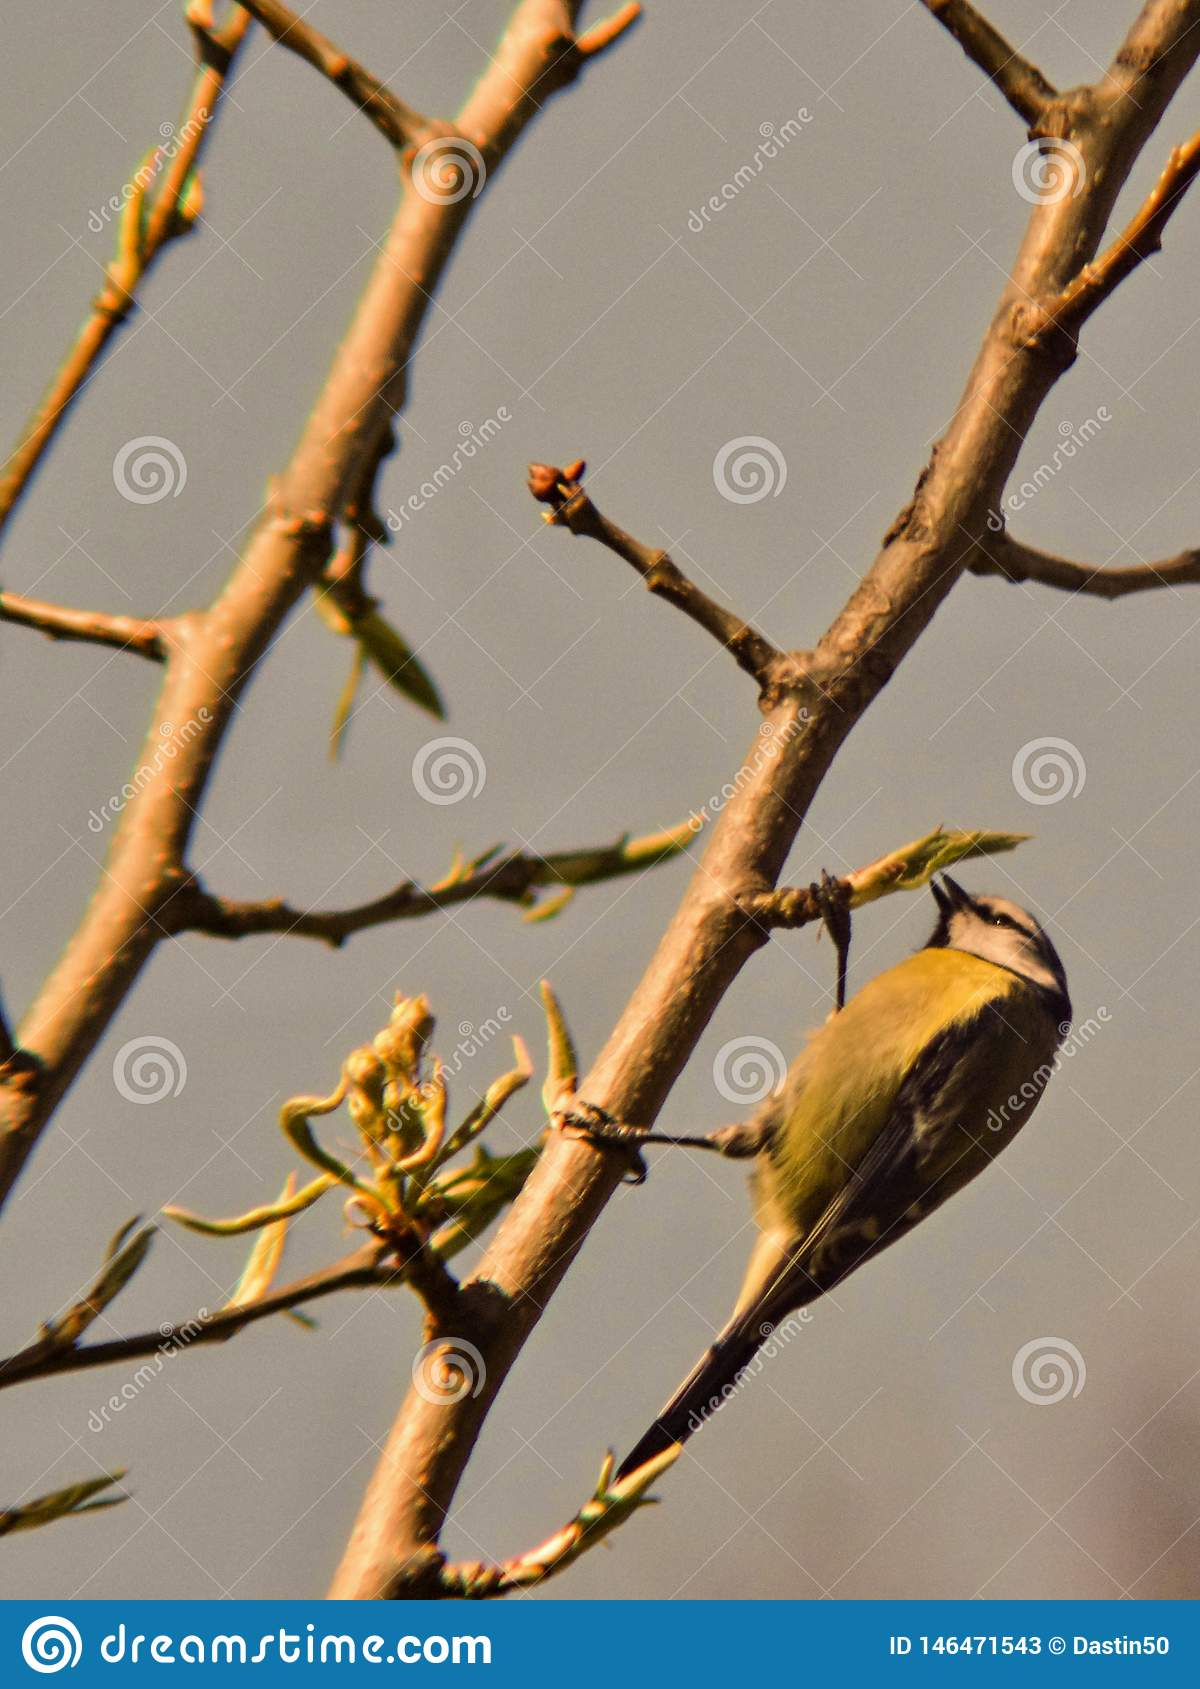 Tit pecking spring buds on pearwood works